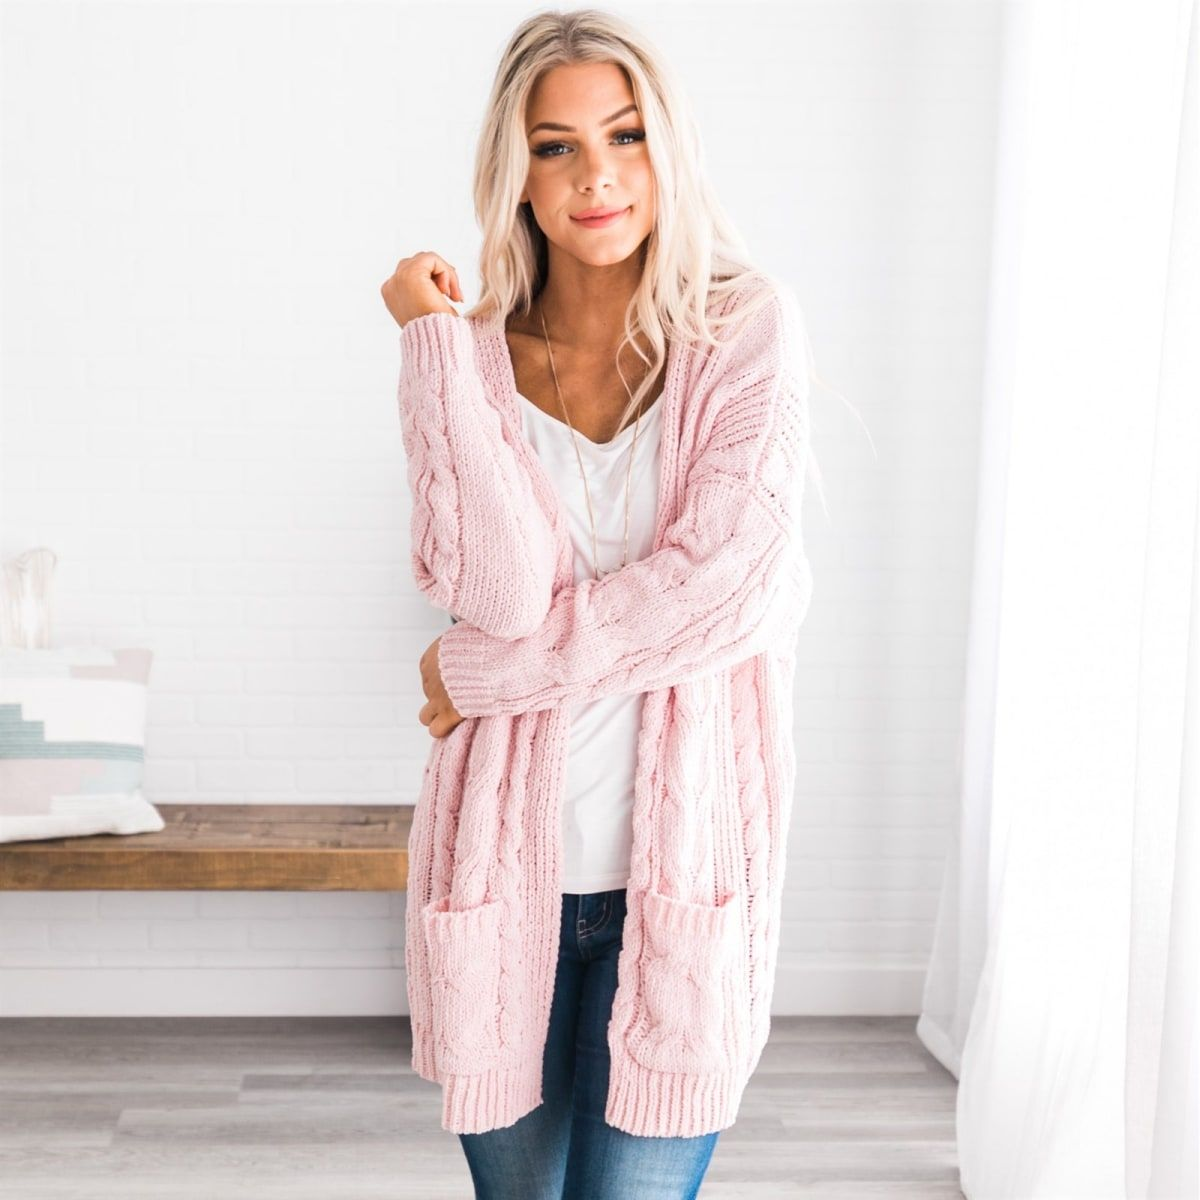 Rylie Cable Knit Cardigan (With images) | Cable knit ...